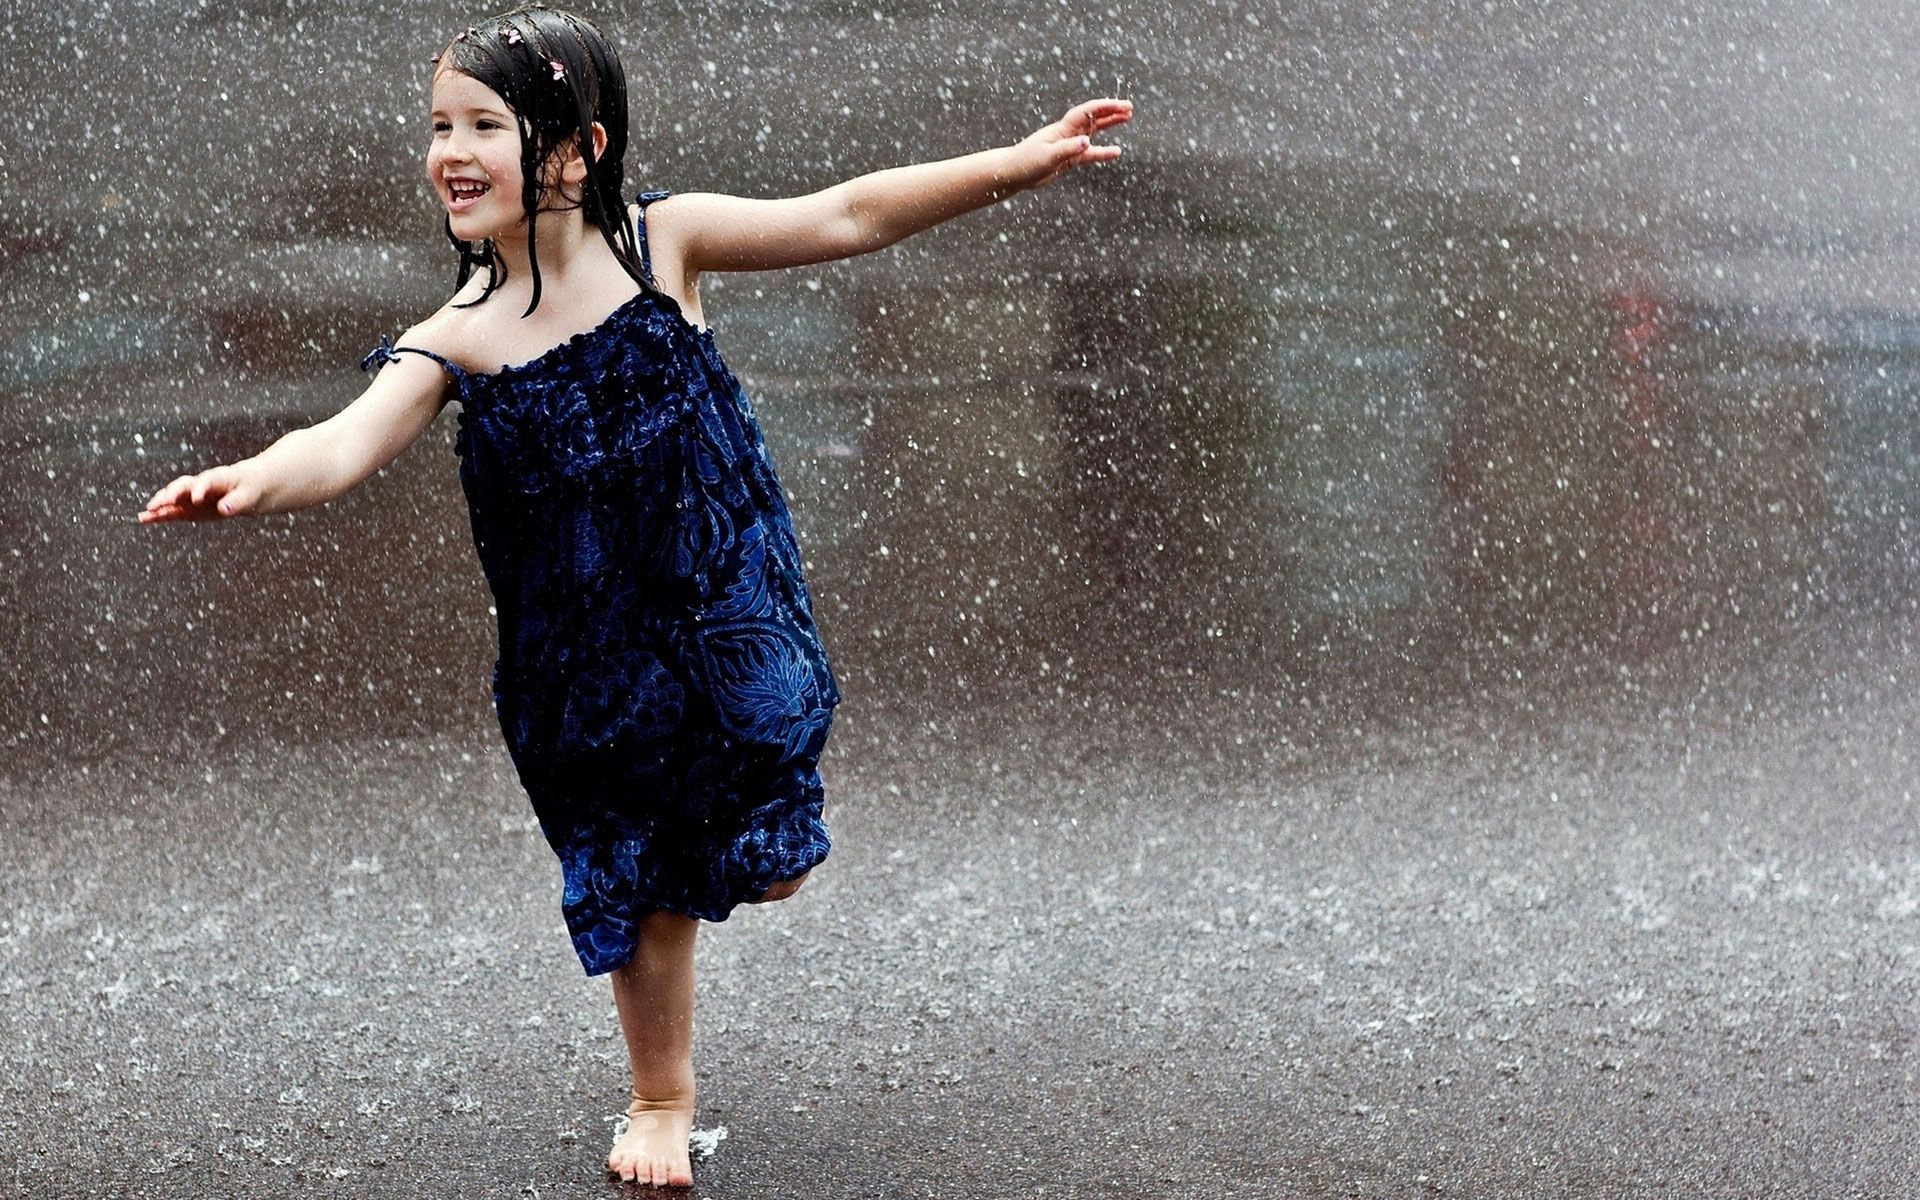 Little Girl In The Rain | Photography wallpaper style in ...